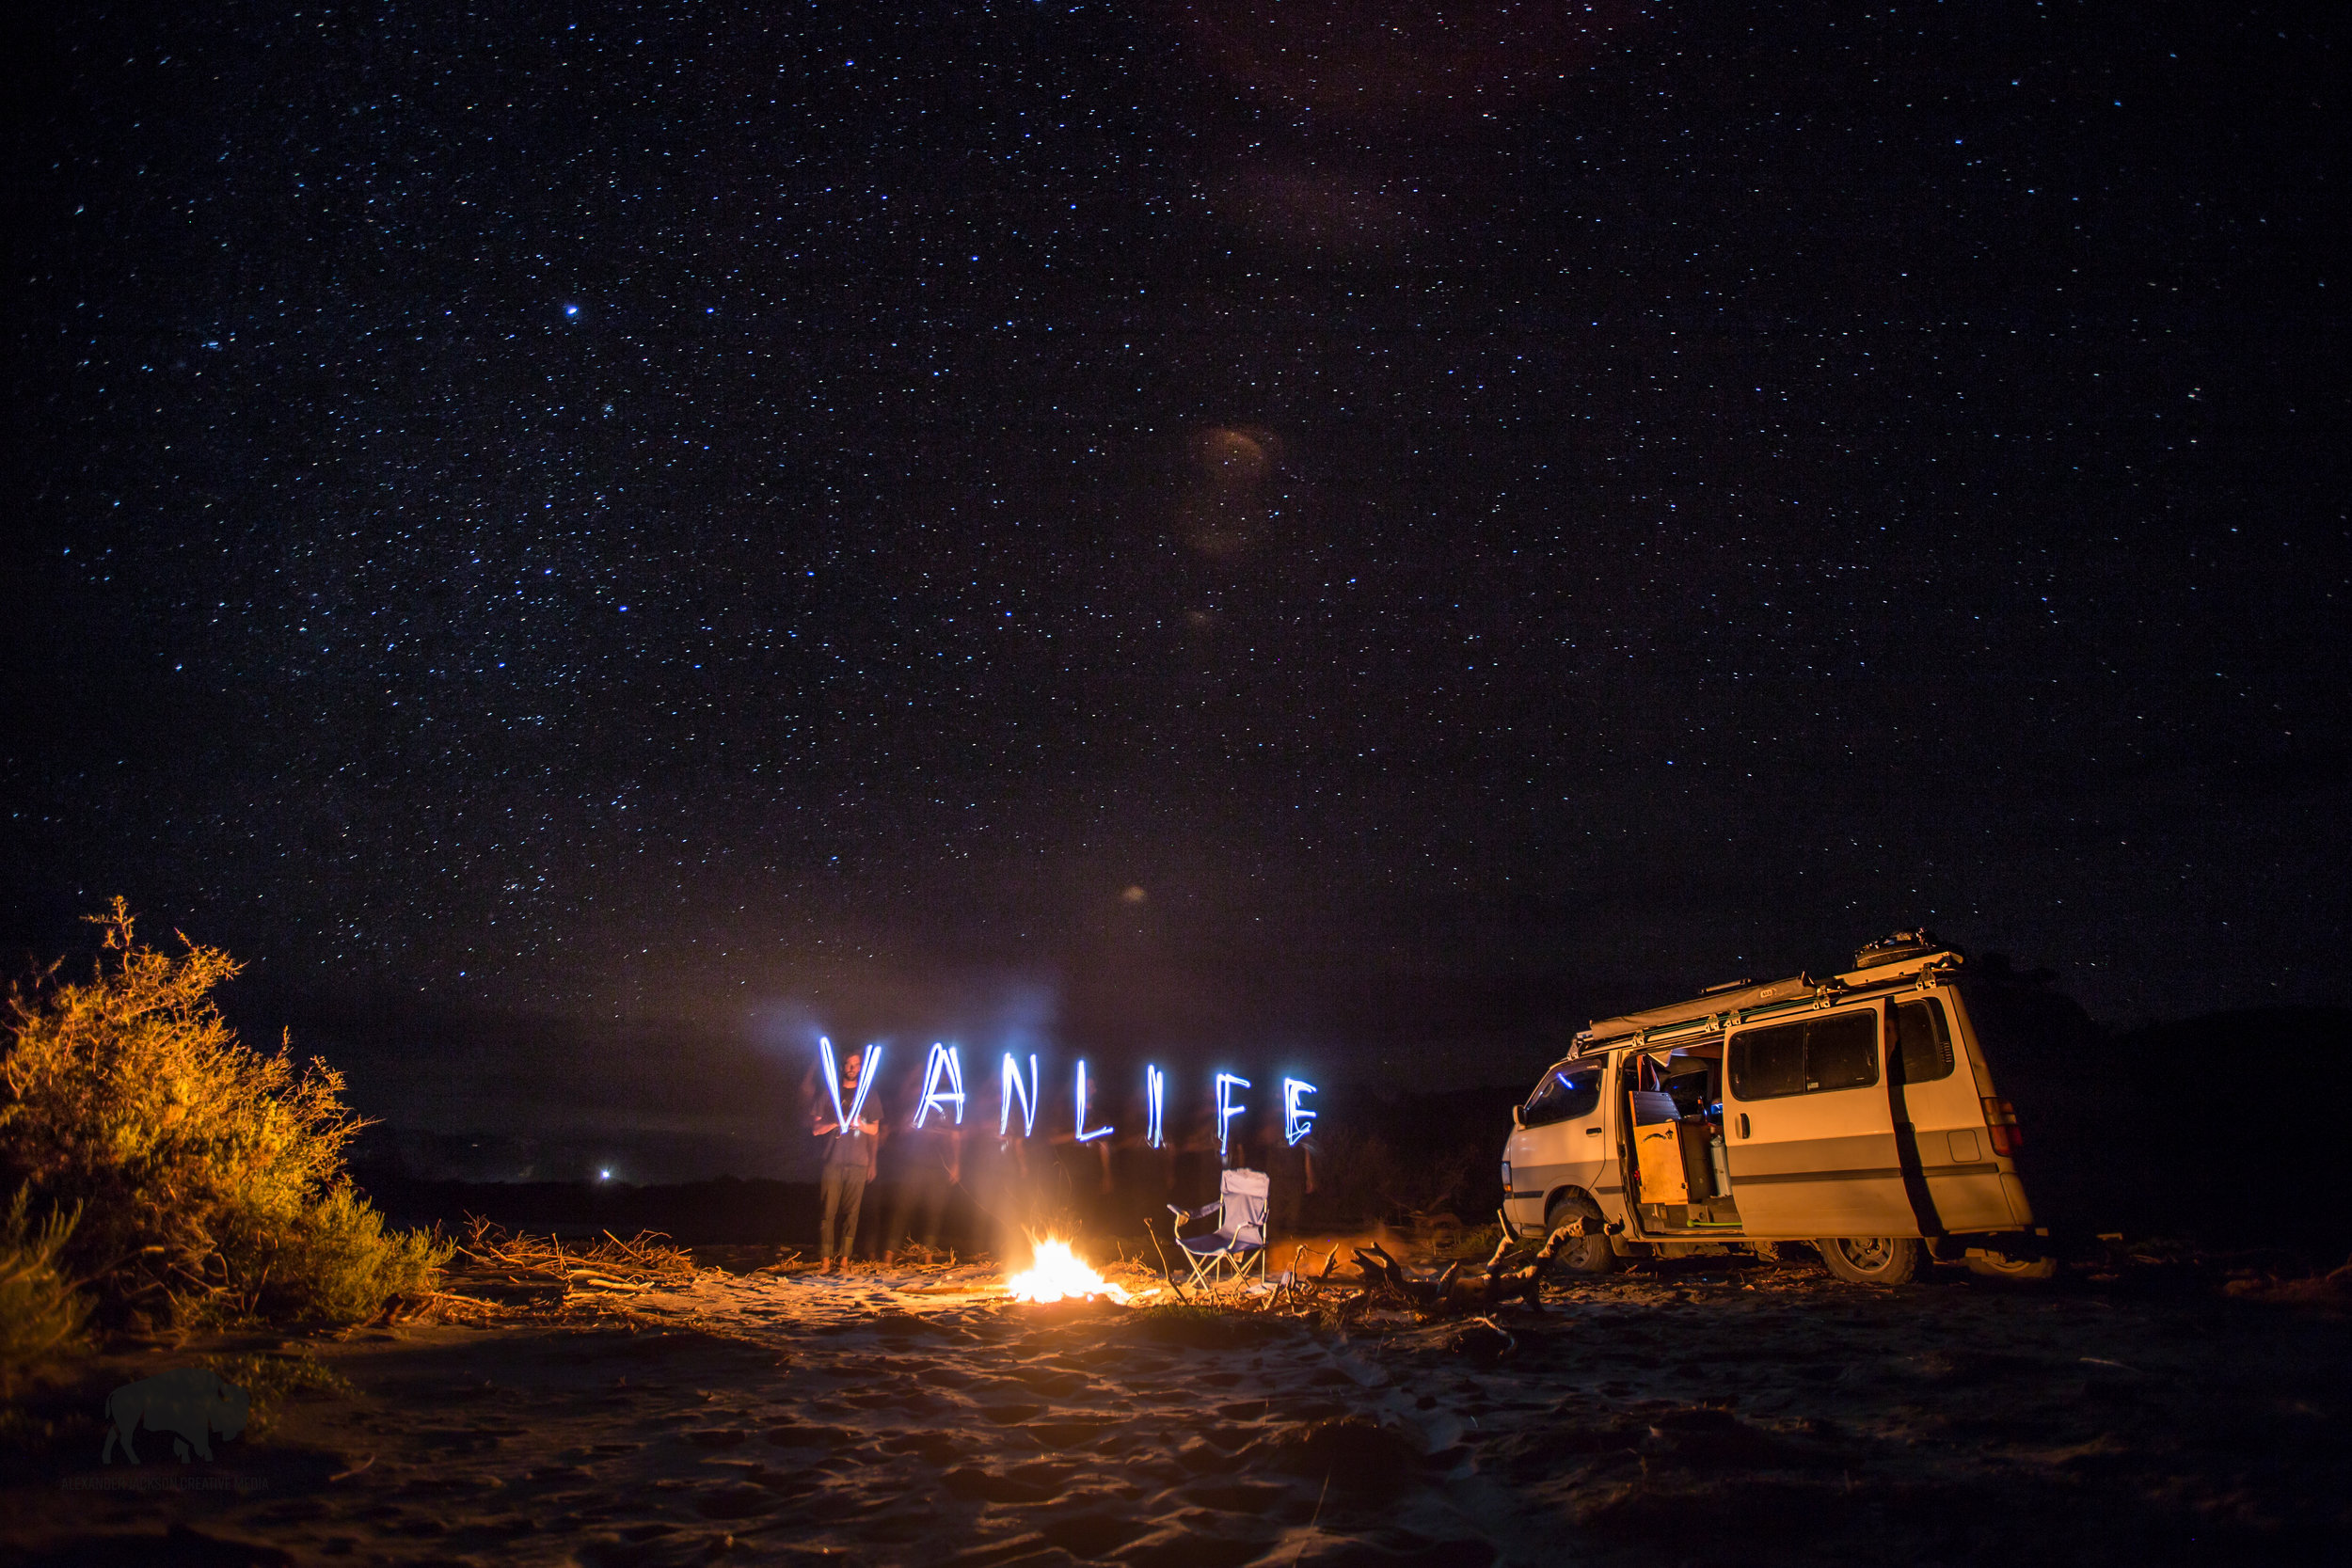 vanlife 247 (11 of 12).jpg